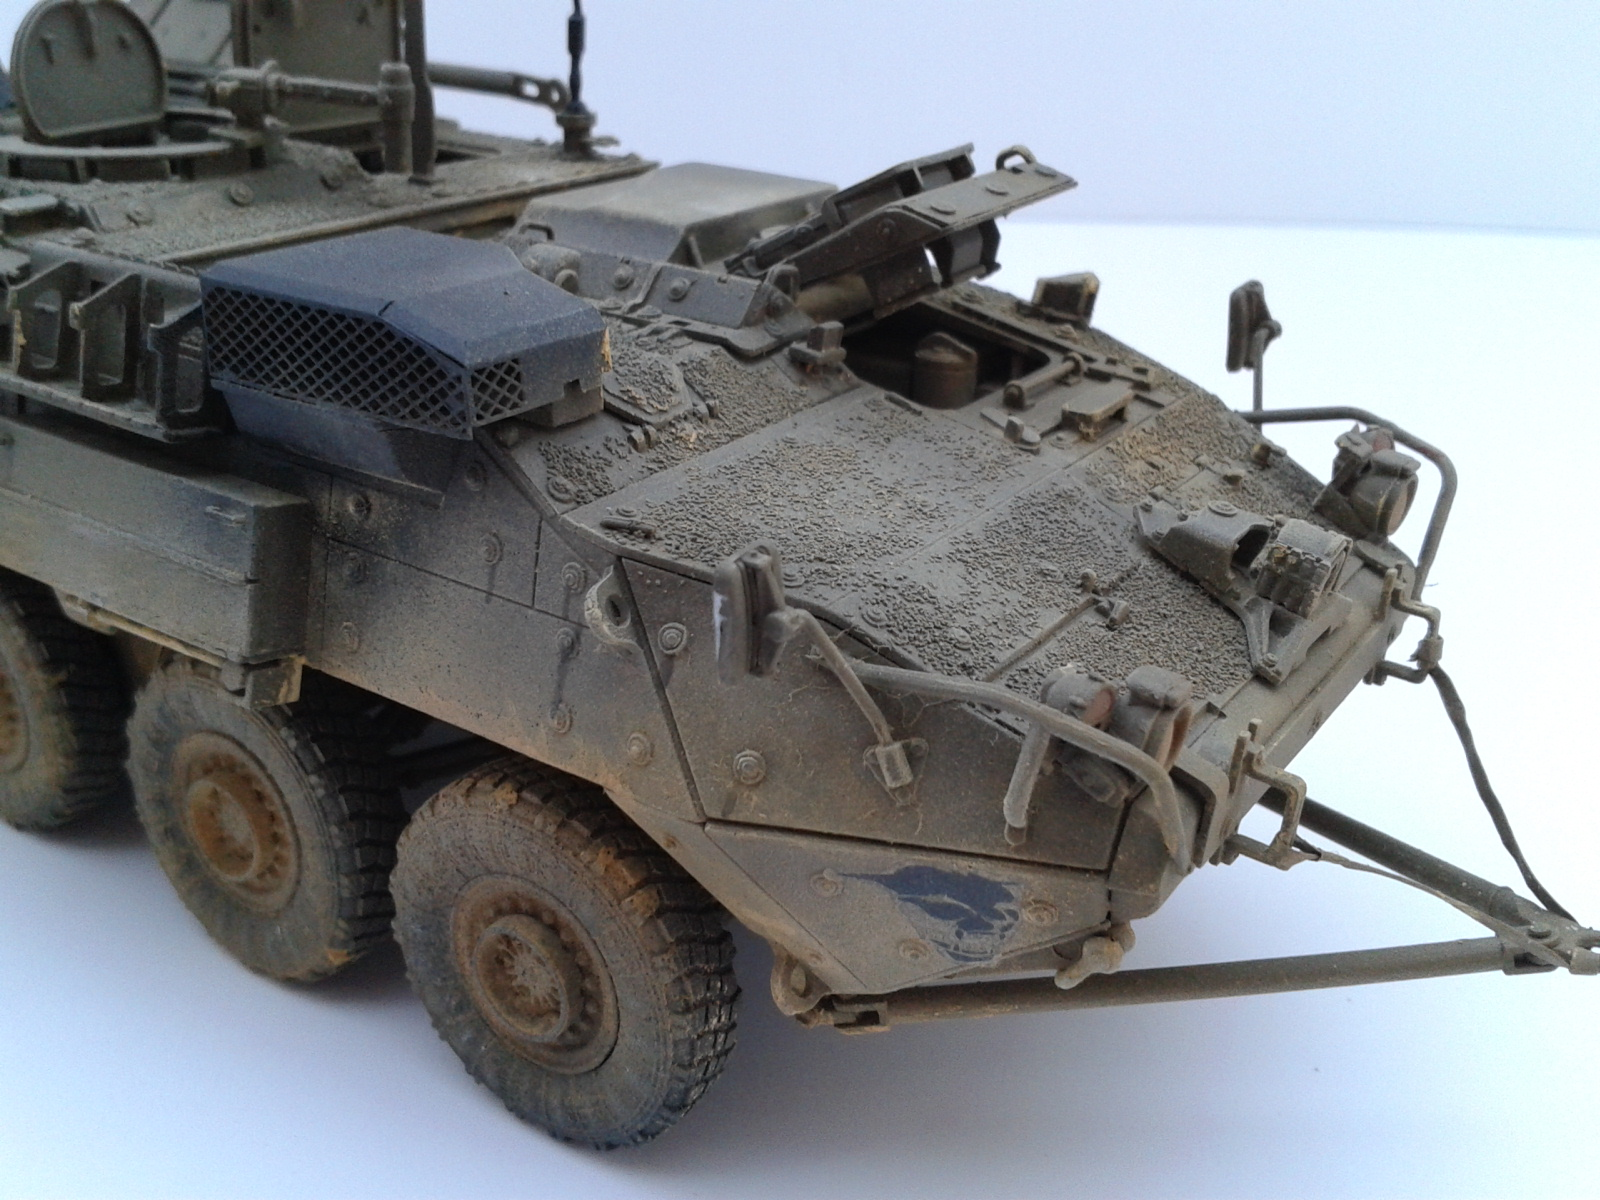 Stryker M1129 Mortar Carrier MC-B ...Montage terminé !!!! - Page 2 Cxwv